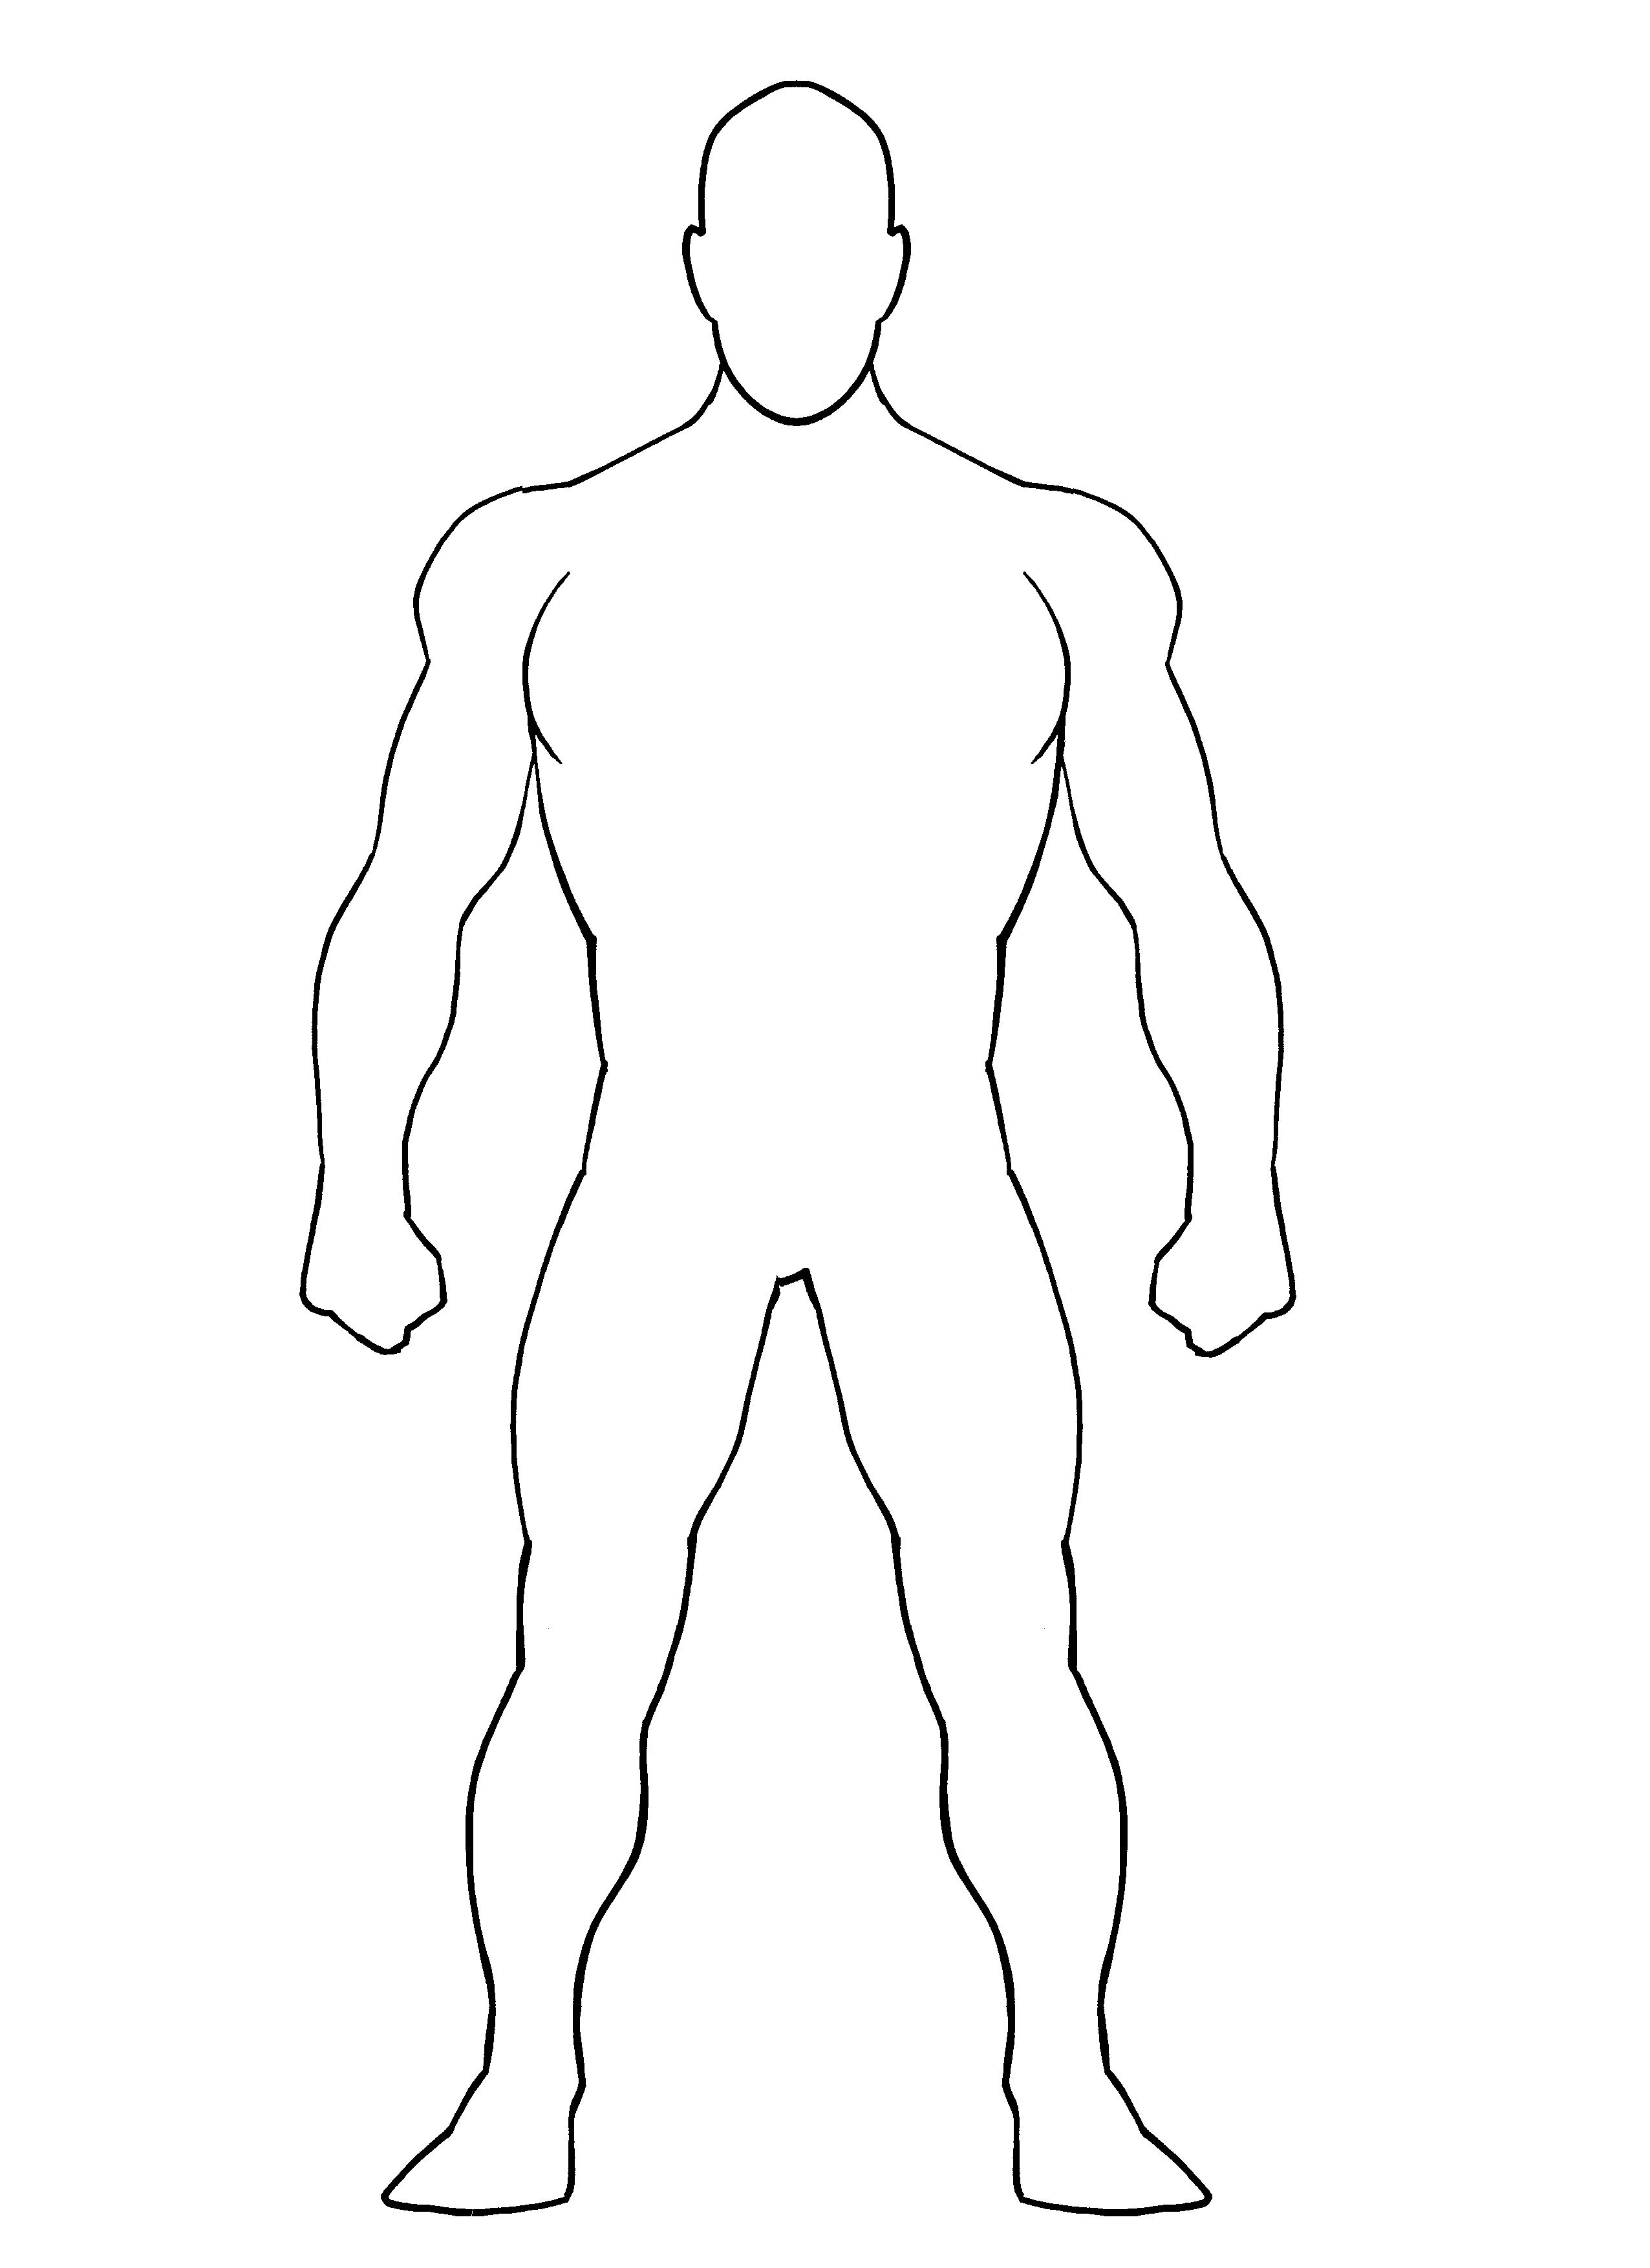 photo about Superhero Template Printable called superheroes determine - Google Look drawing Pinterest